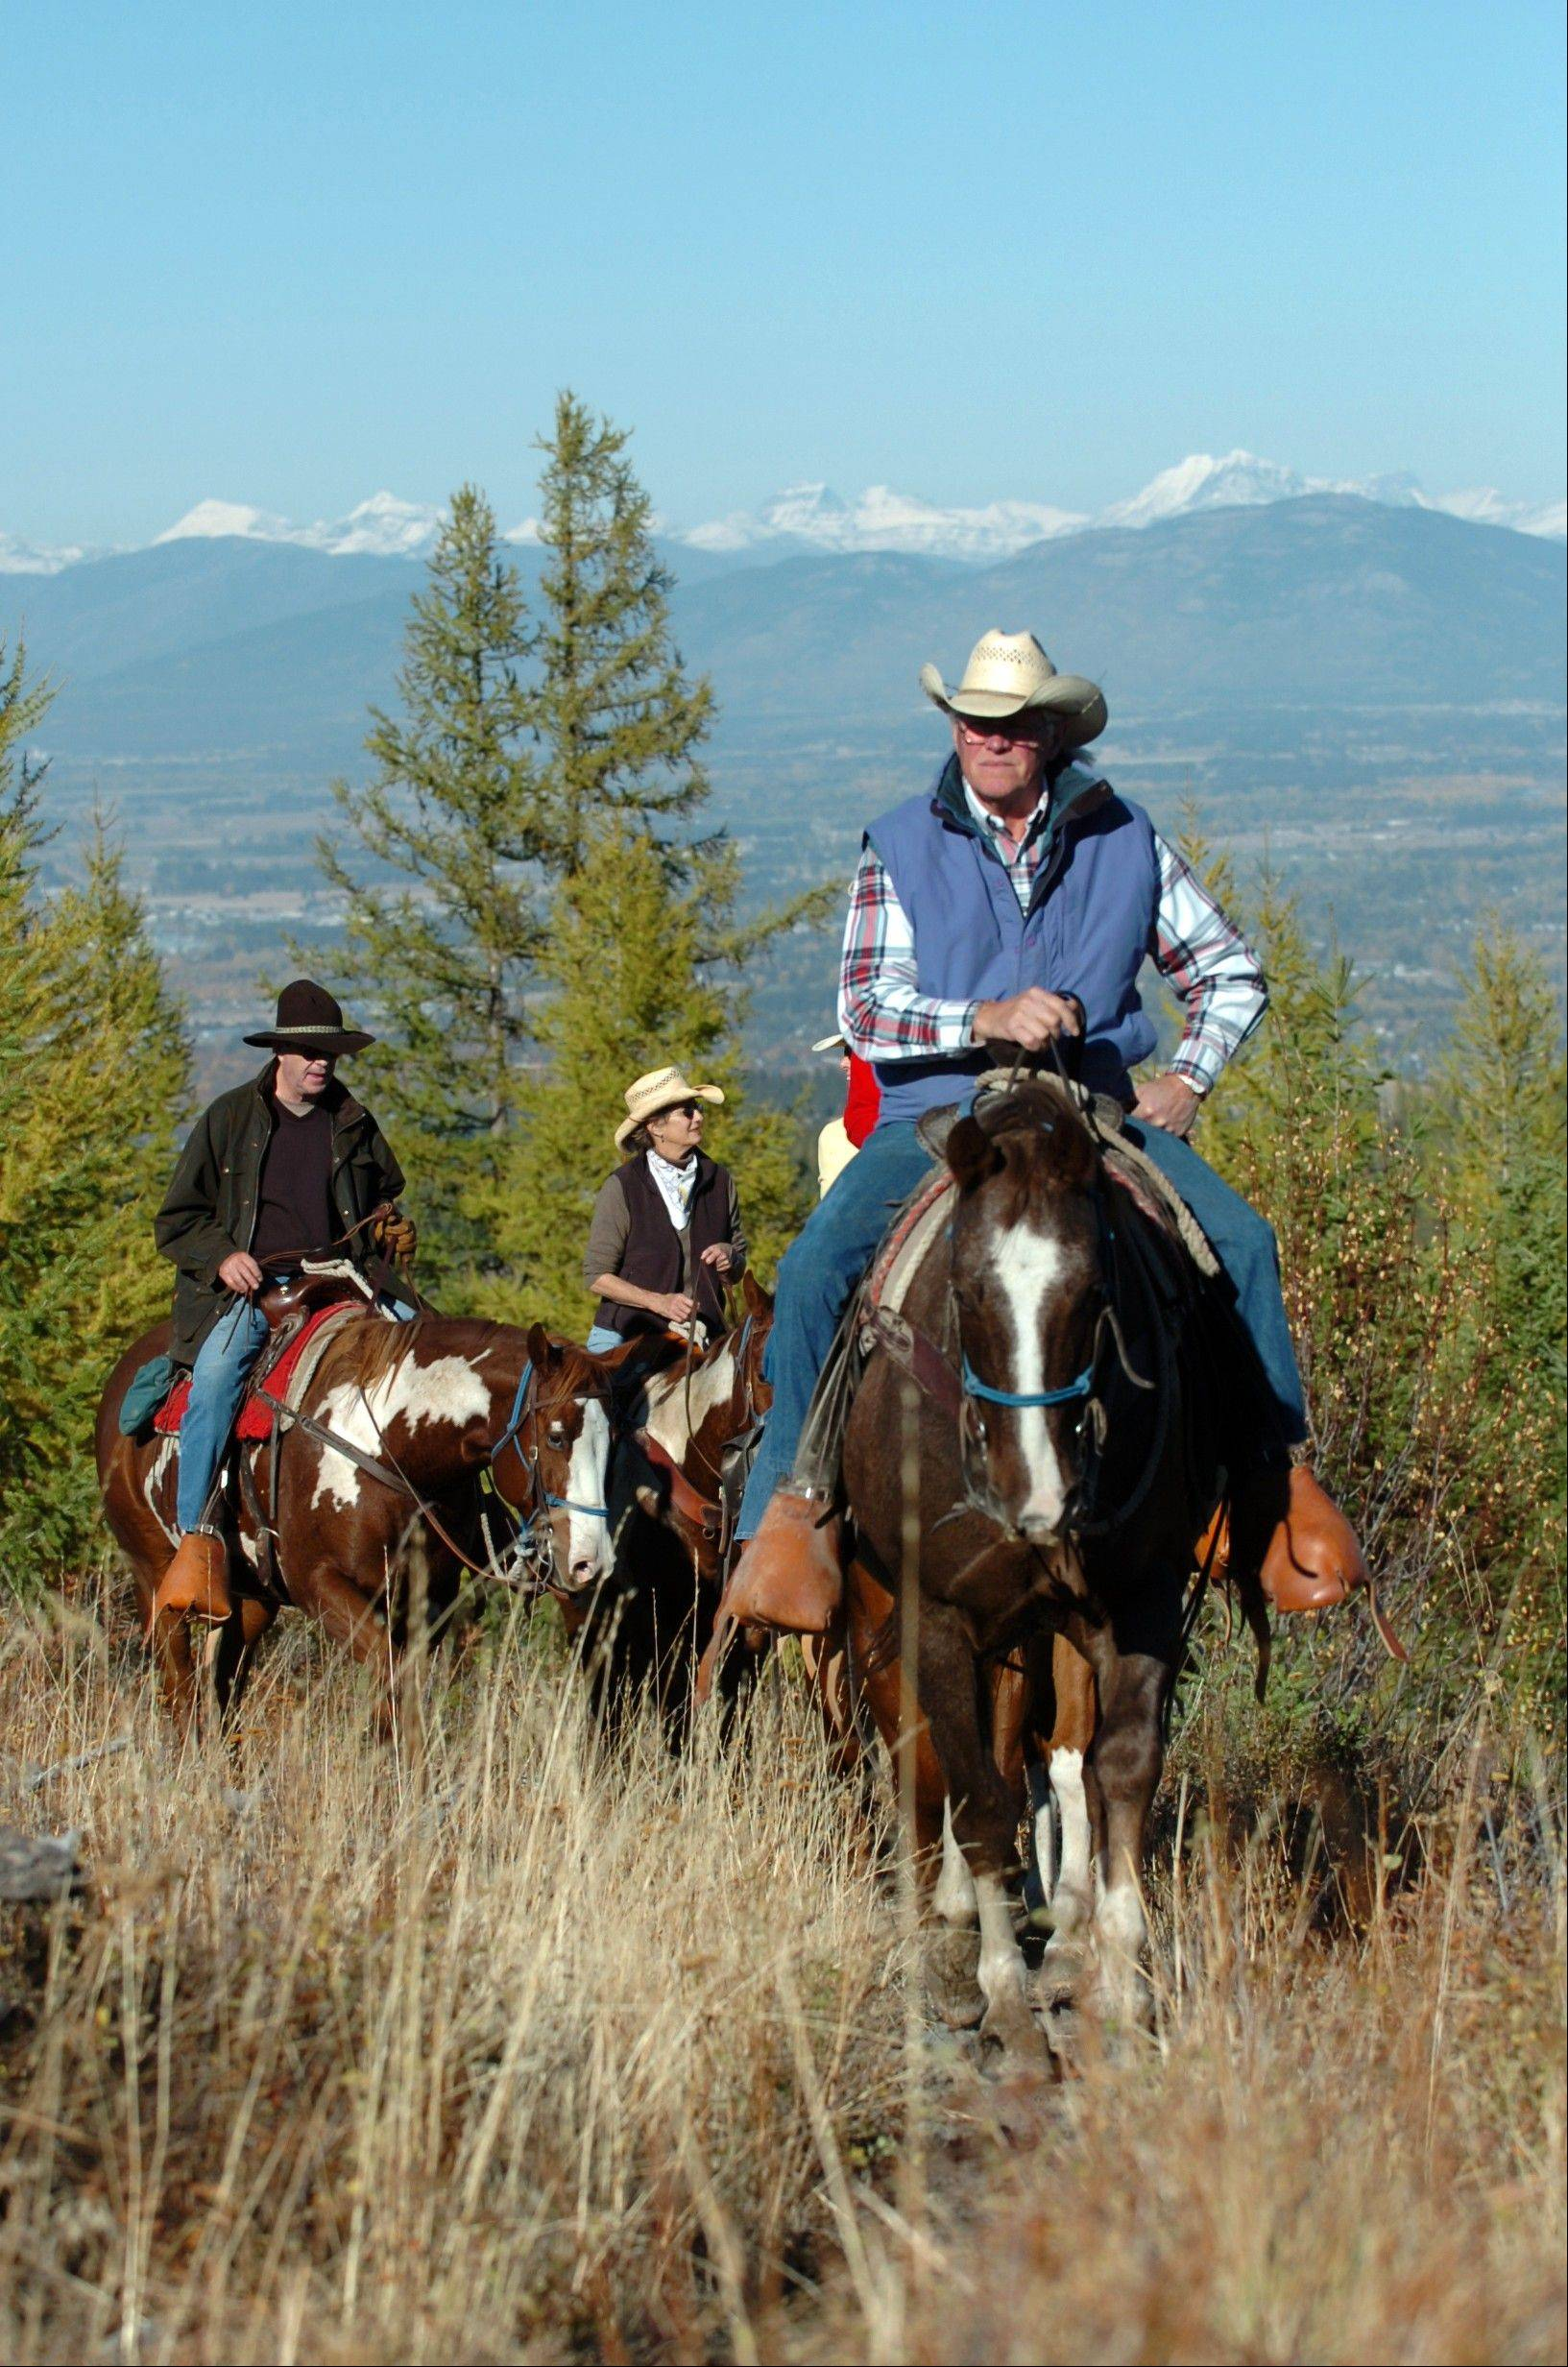 Cecil Noble, co-owner of Artemis Acres ranch, leads riders Bill and Sally Herndon of Bigfork up a mountain southwest of Kalispell, Mont. The idea of people who uproot and move when they retire conjures up images of warm, sunny Florida or Arizona. But some of the older members of the baby boom generation � the 78 million Americans born between 1946 and 1964 � are looking elsewhere, and a number of towns in cooler climates from Maine to Washington have become popular retirement destinations.